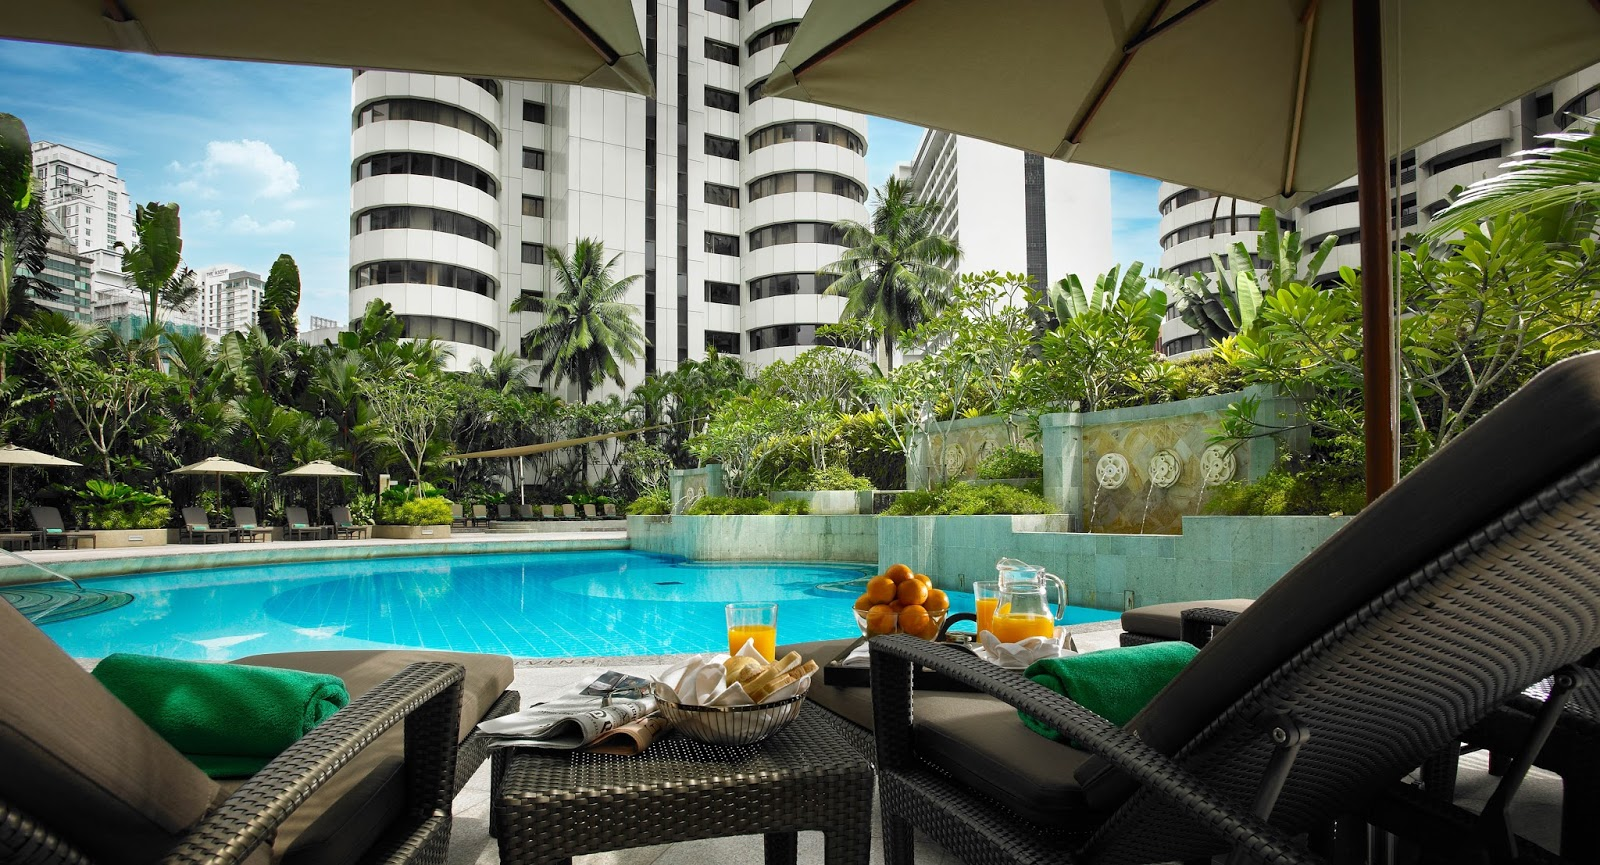 Kee Hua Chee Live Home Alone This Weekend Round Up The Gang And Check Into Kl 39 S Best Hotel